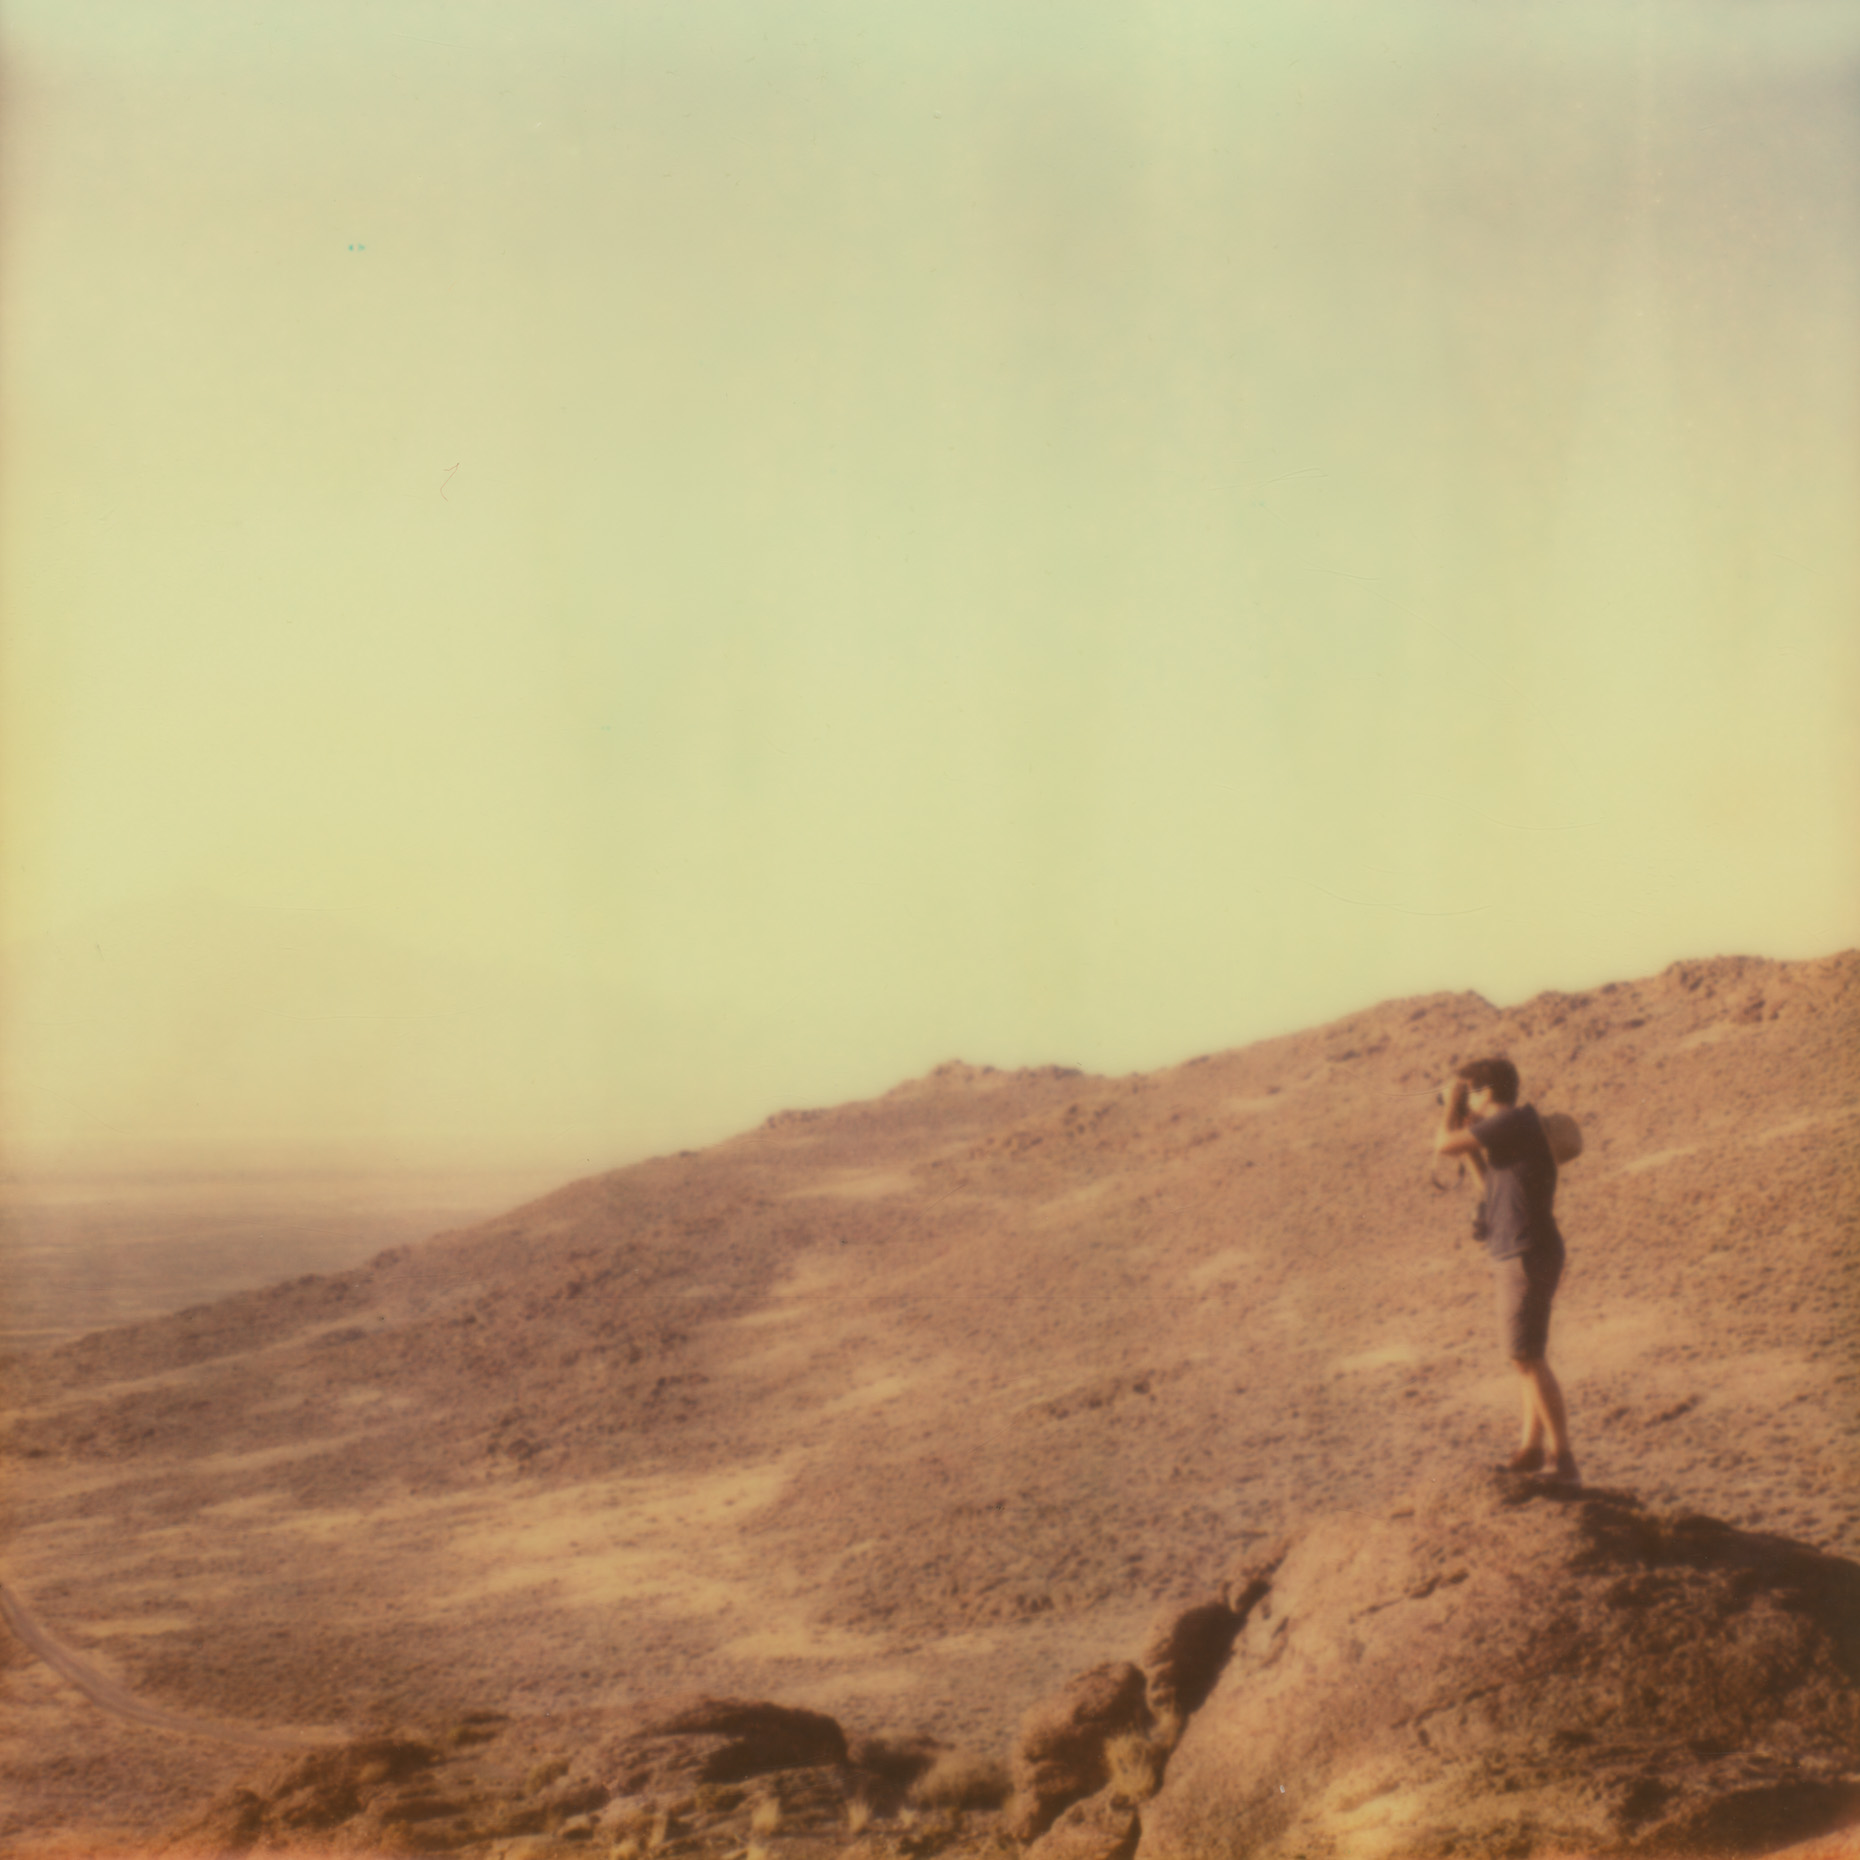 20120811-020-PX70CS-CO